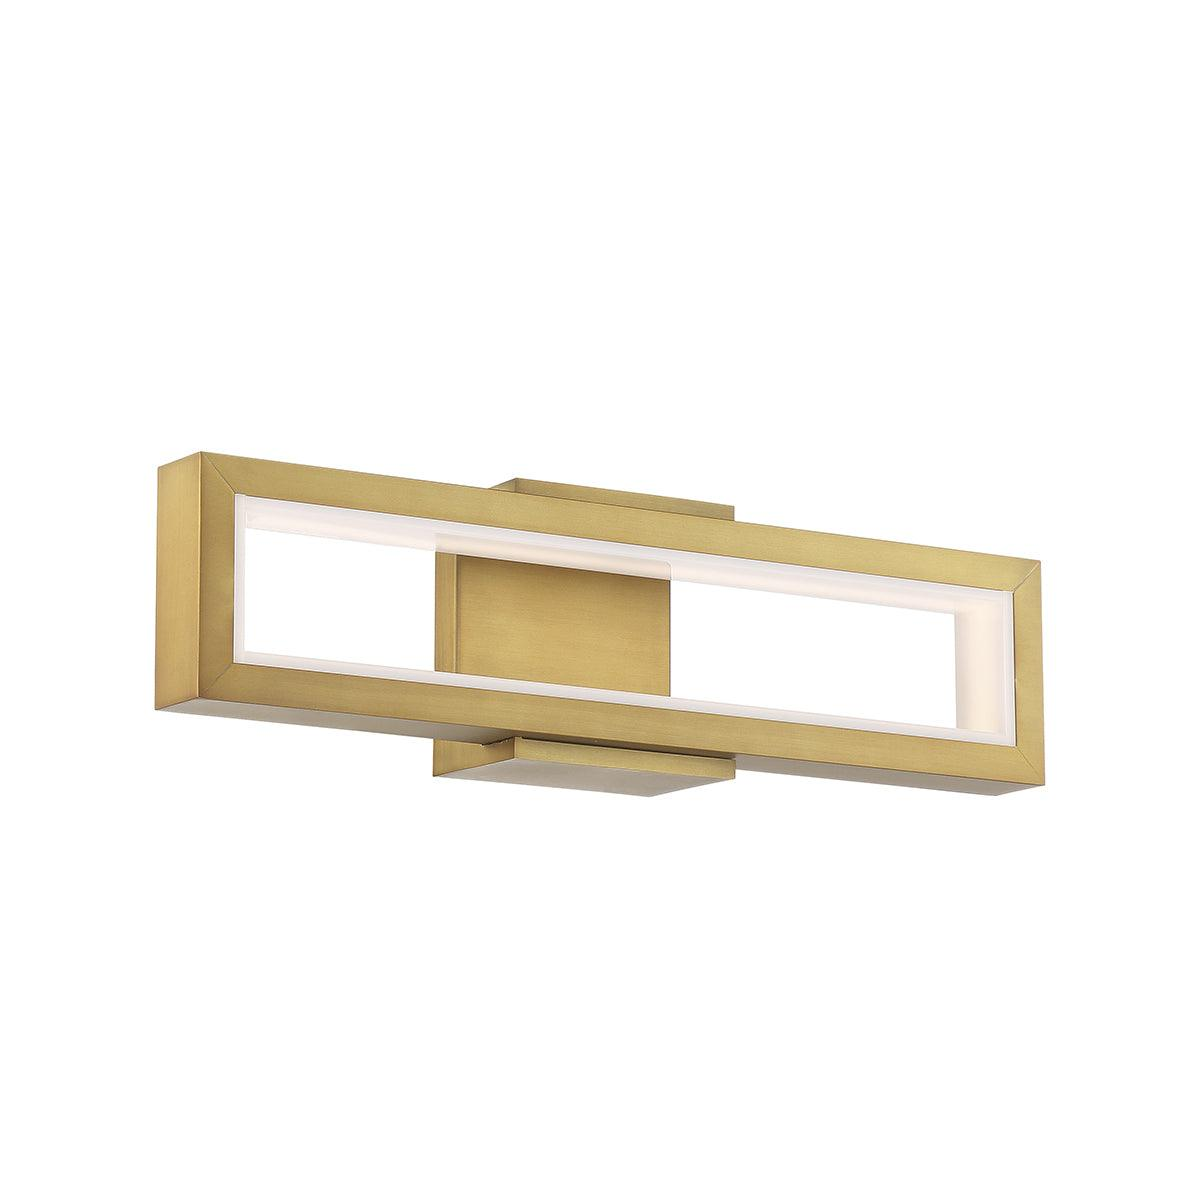 Modern Forms Canada - WS-50820-AB - LED Bathroom Vanity - Mies - Aged Brass